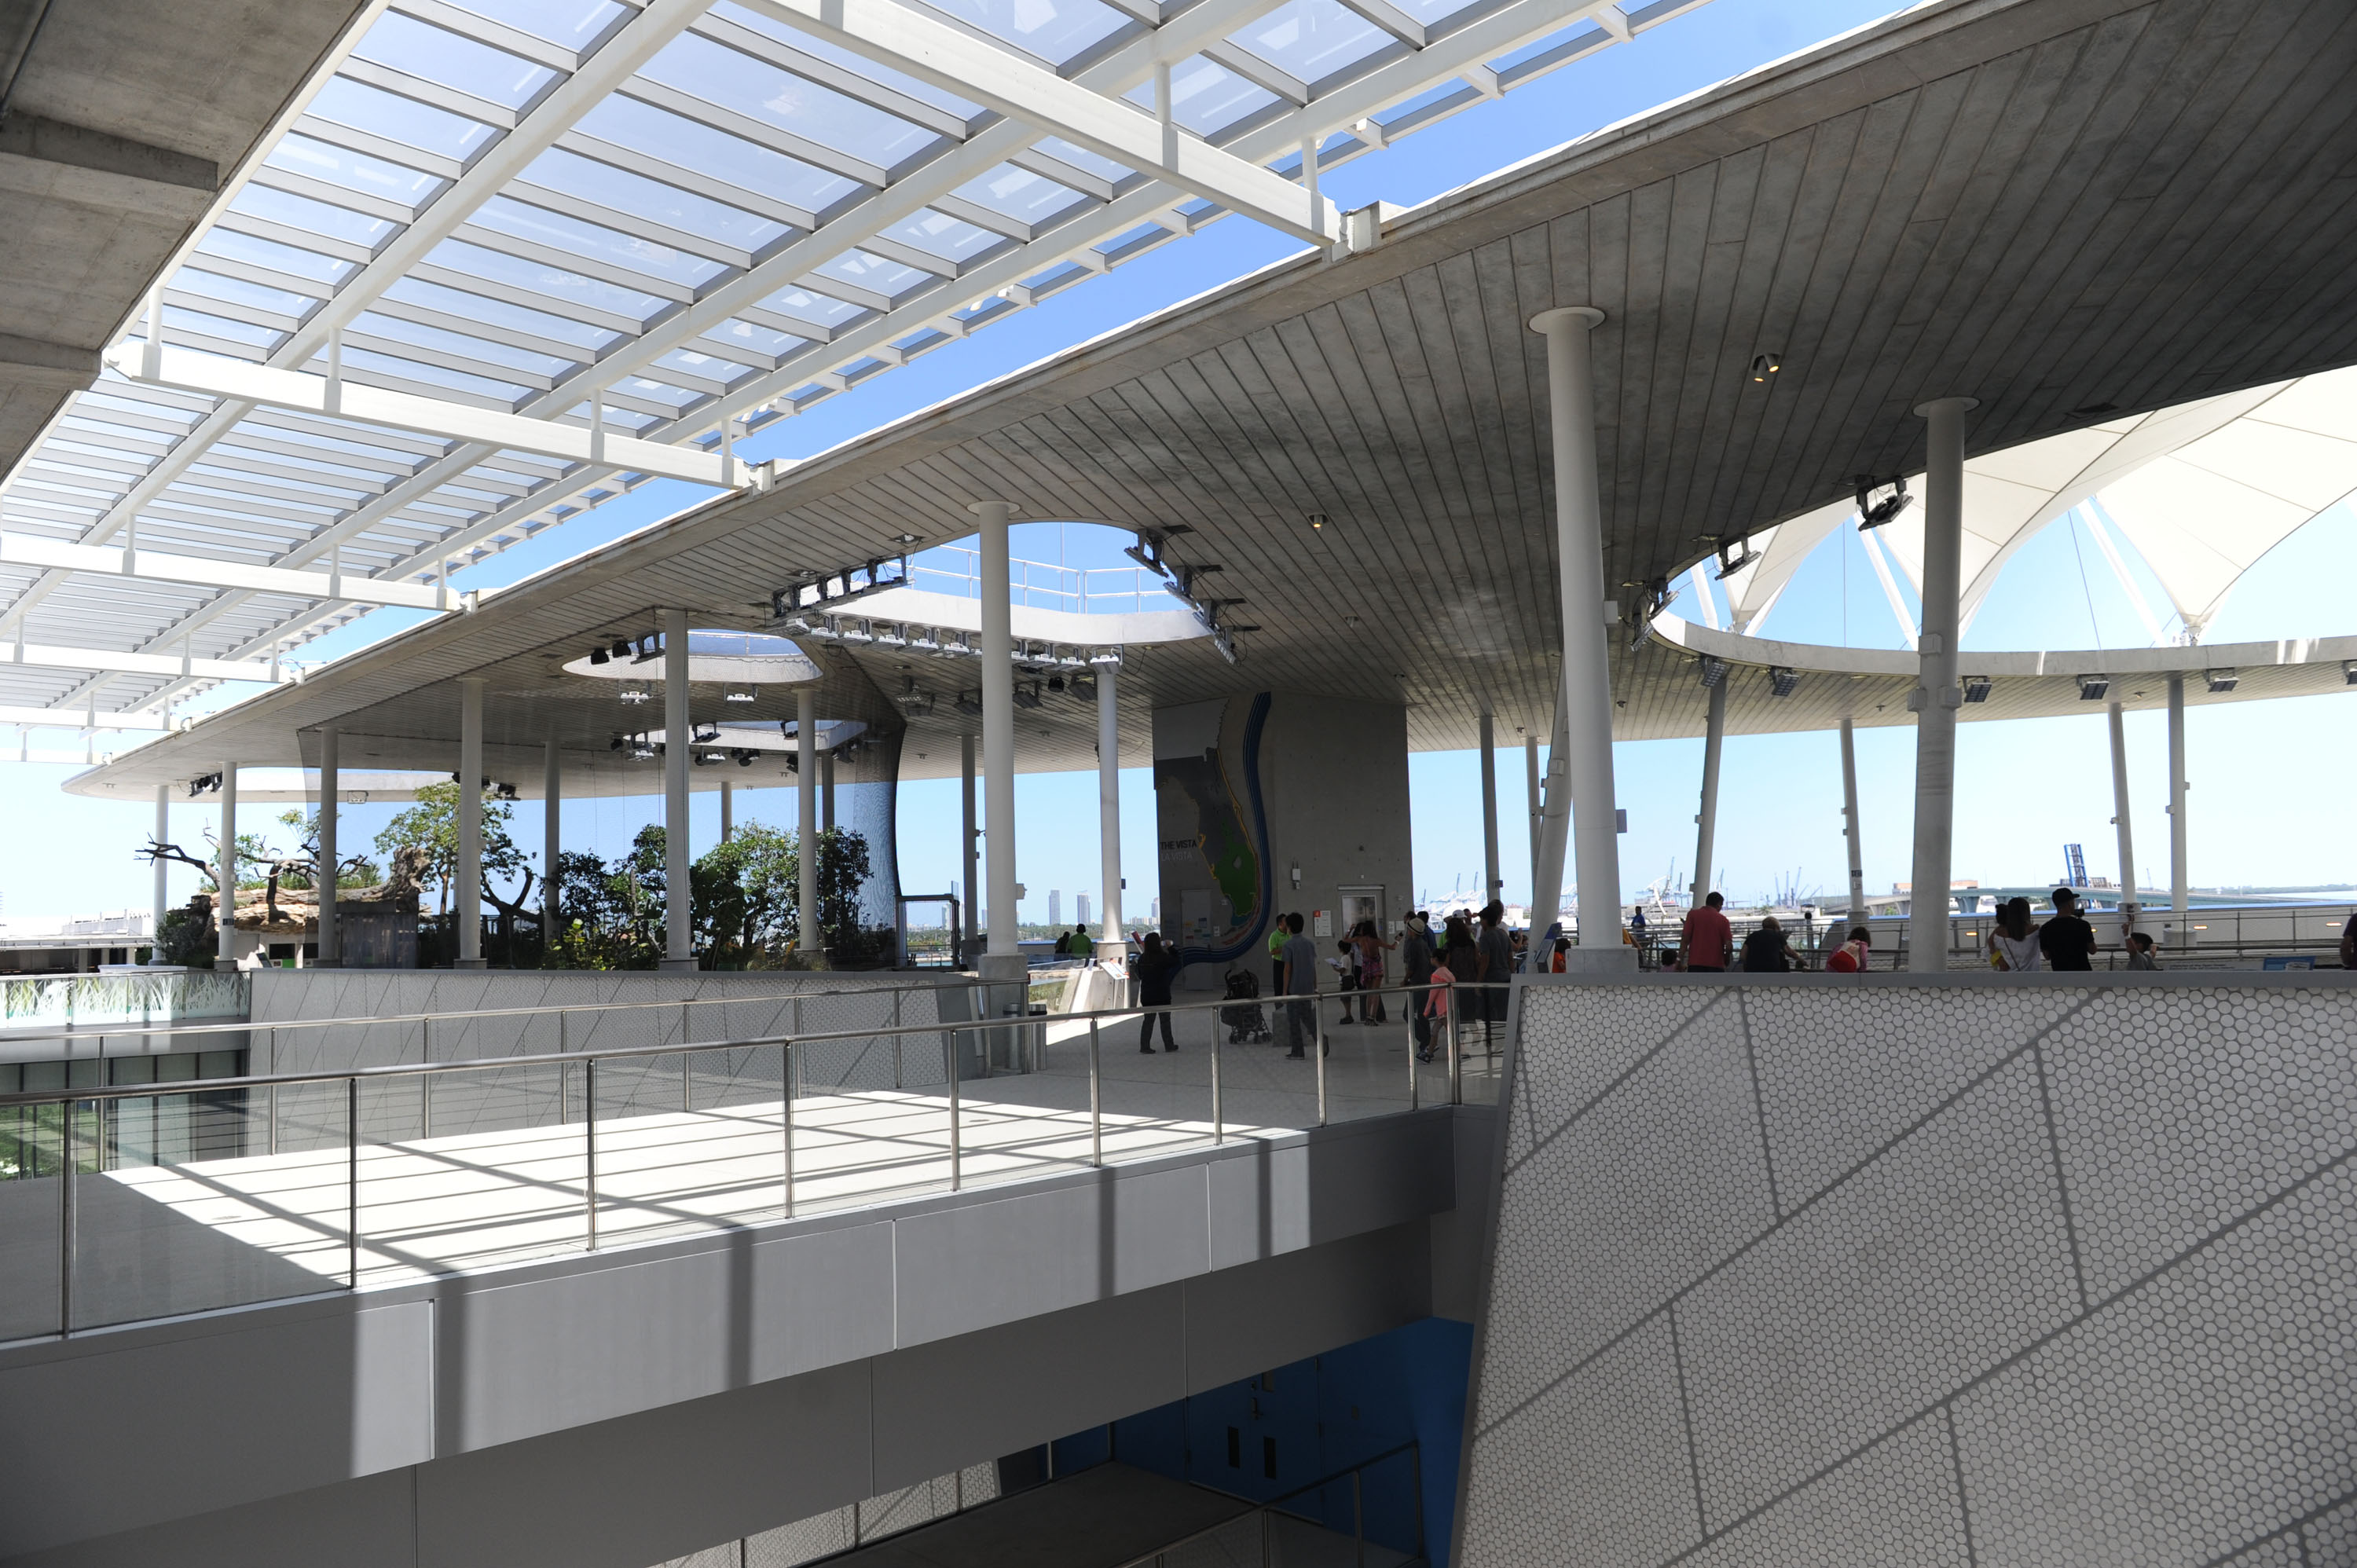 An outer view of the Aquarium at frost museum of science.